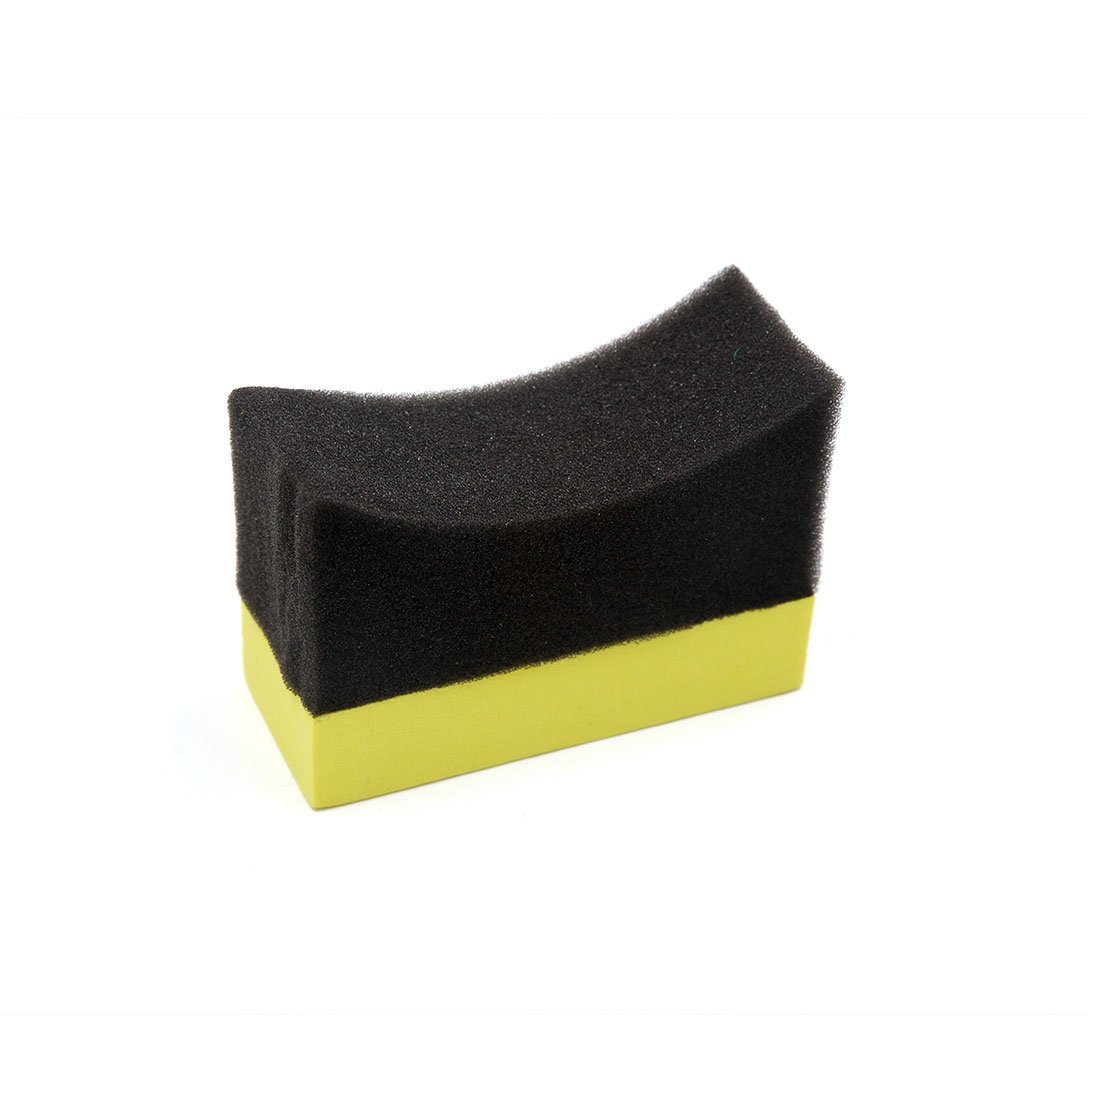 Universal Yellow Foam Black Sponge Car Vehicle Waxing Buffing Tool Polishing Pad